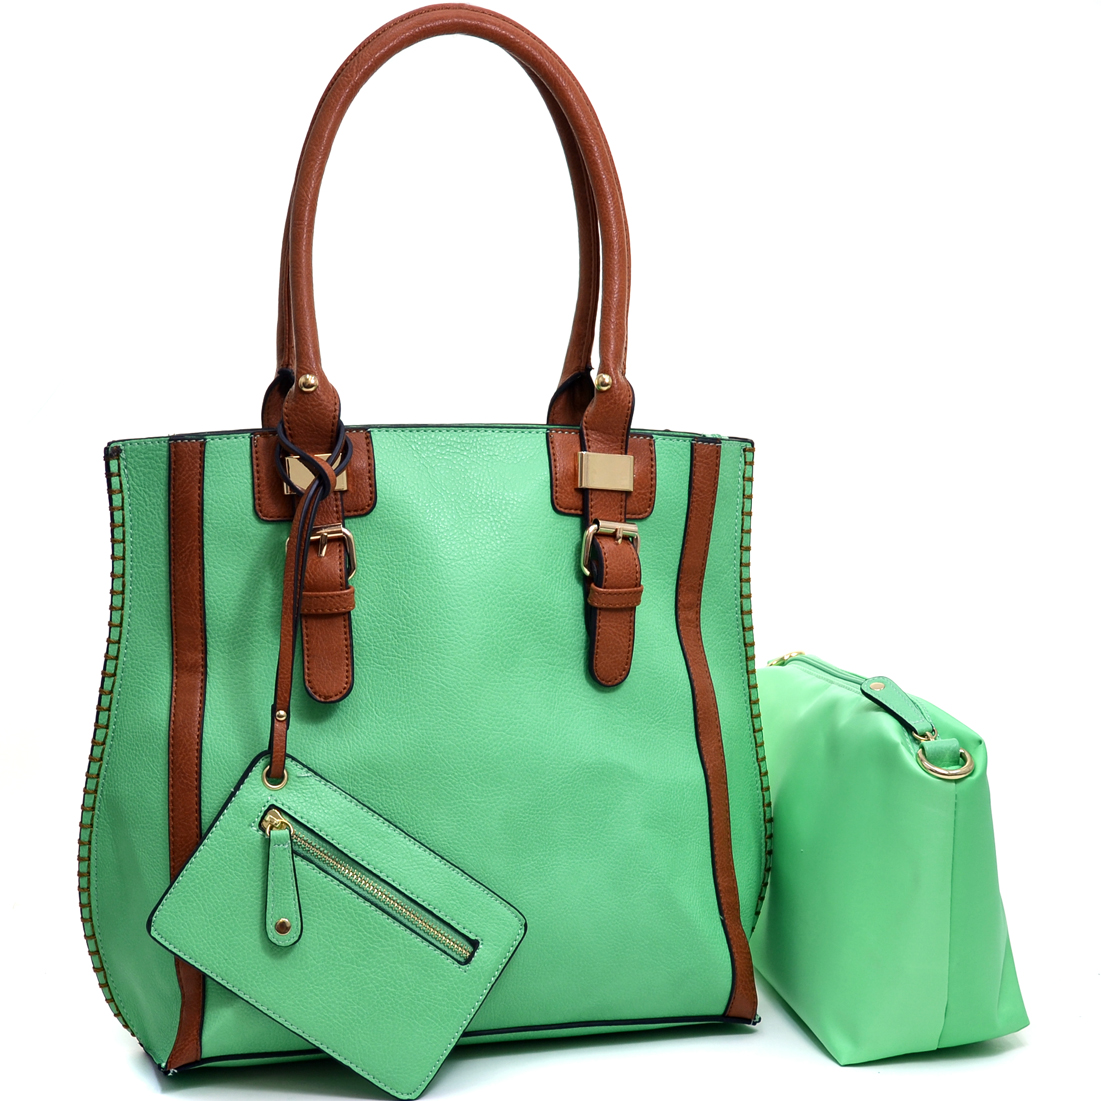 3 in 1 Belted Tote Bag